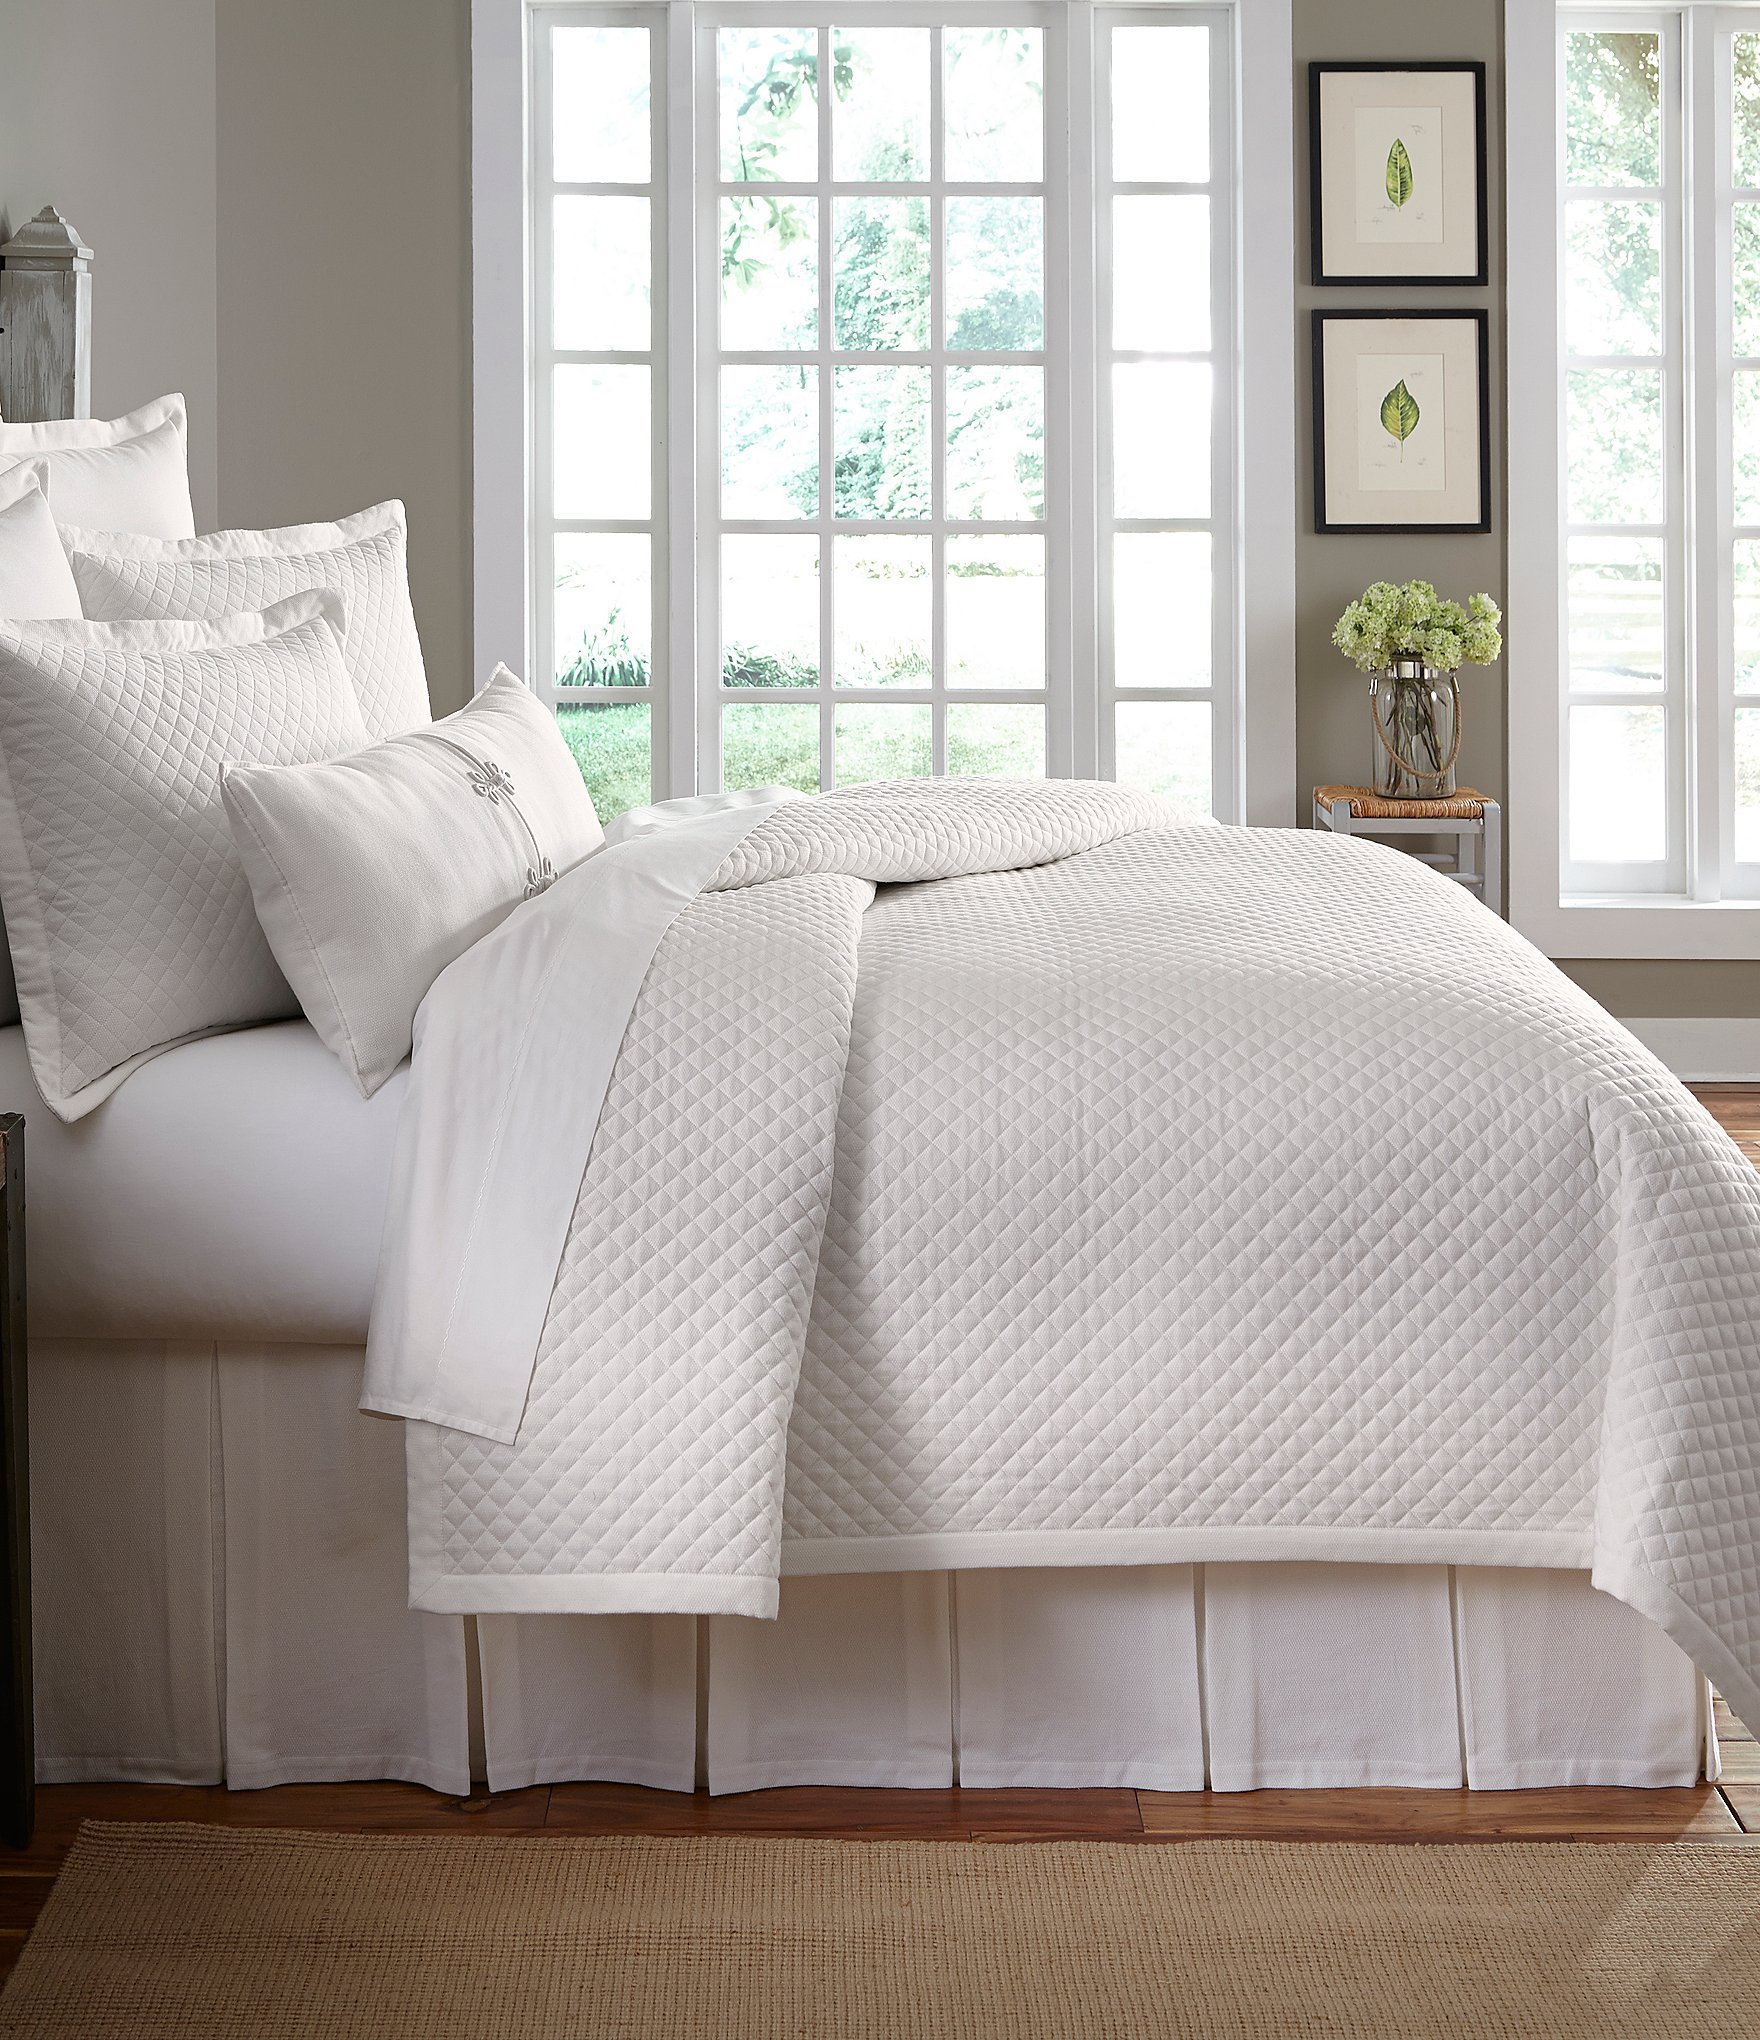 living sets bed southern bedding collections country